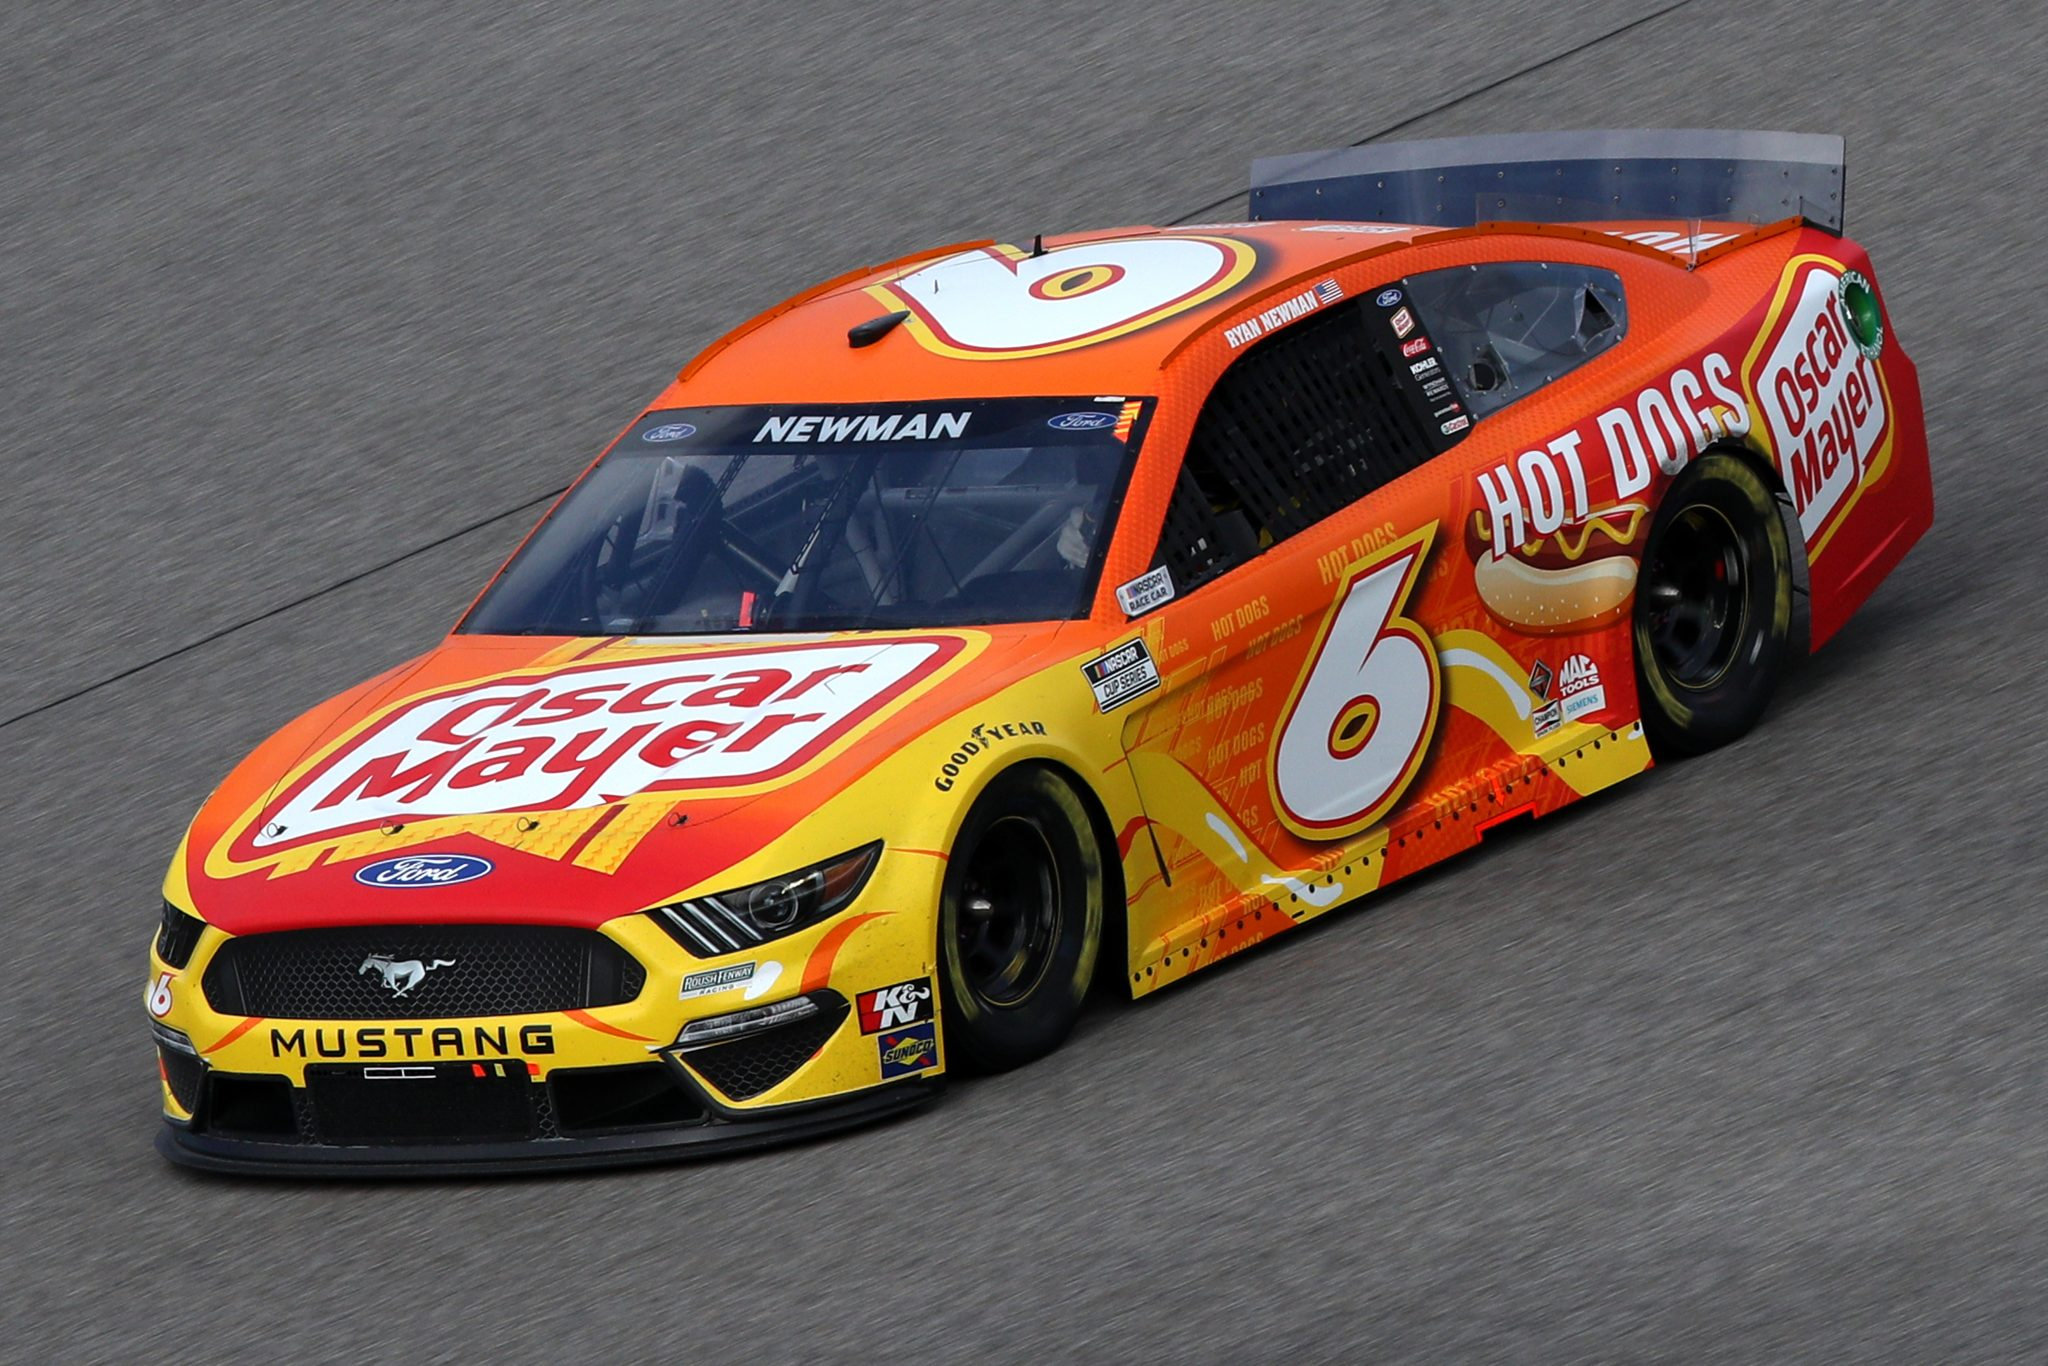 HOMESTEAD, FLORIDA - FEBRUARY 28: Ryan Newman, driver of the #6 Oscar Mayer Hot Dogs Ford, drives during the NASCAR Cup Series Dixie Vodka 400 at Homestead-Miami Speedway on February 28, 2021 in Homestead, Florida. (Photo by Sean Gardner/Getty Images) | Getty Images